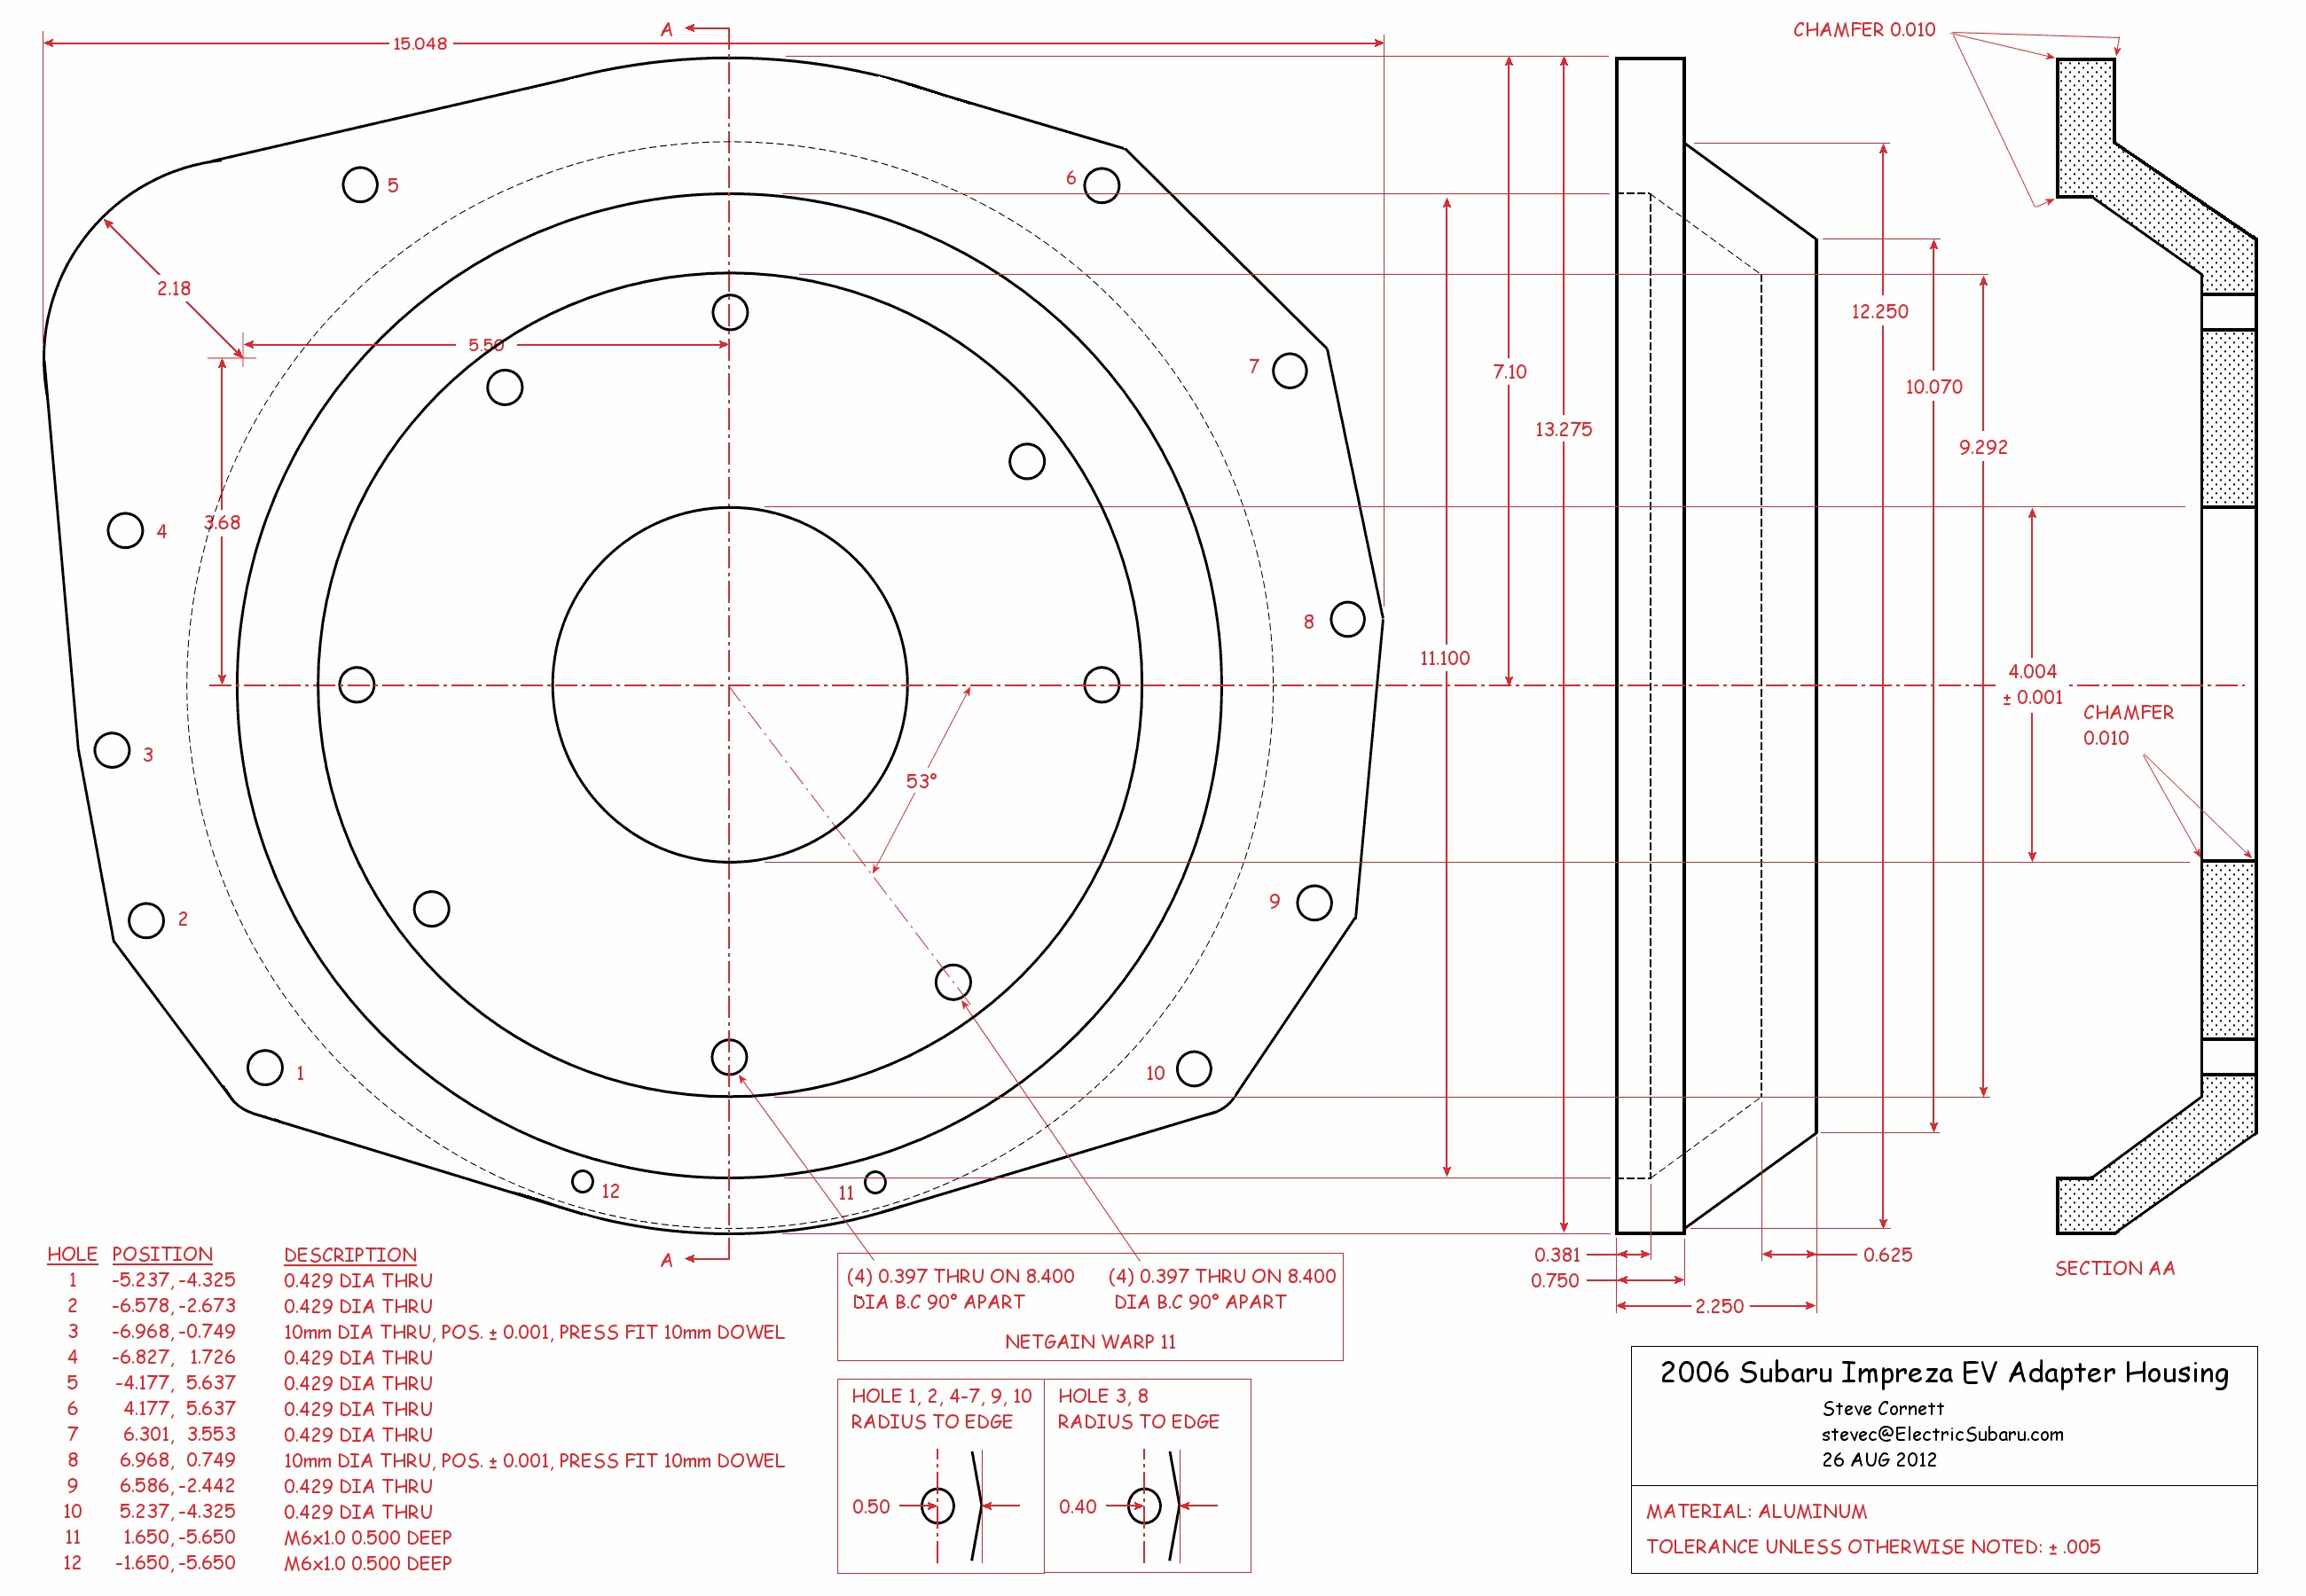 Diagram Of Car Gearbox Pin by Rodrigo Passos On Gearbox Of Diagram Of Car Gearbox Pin by Rodrigo Passos On Gearbox